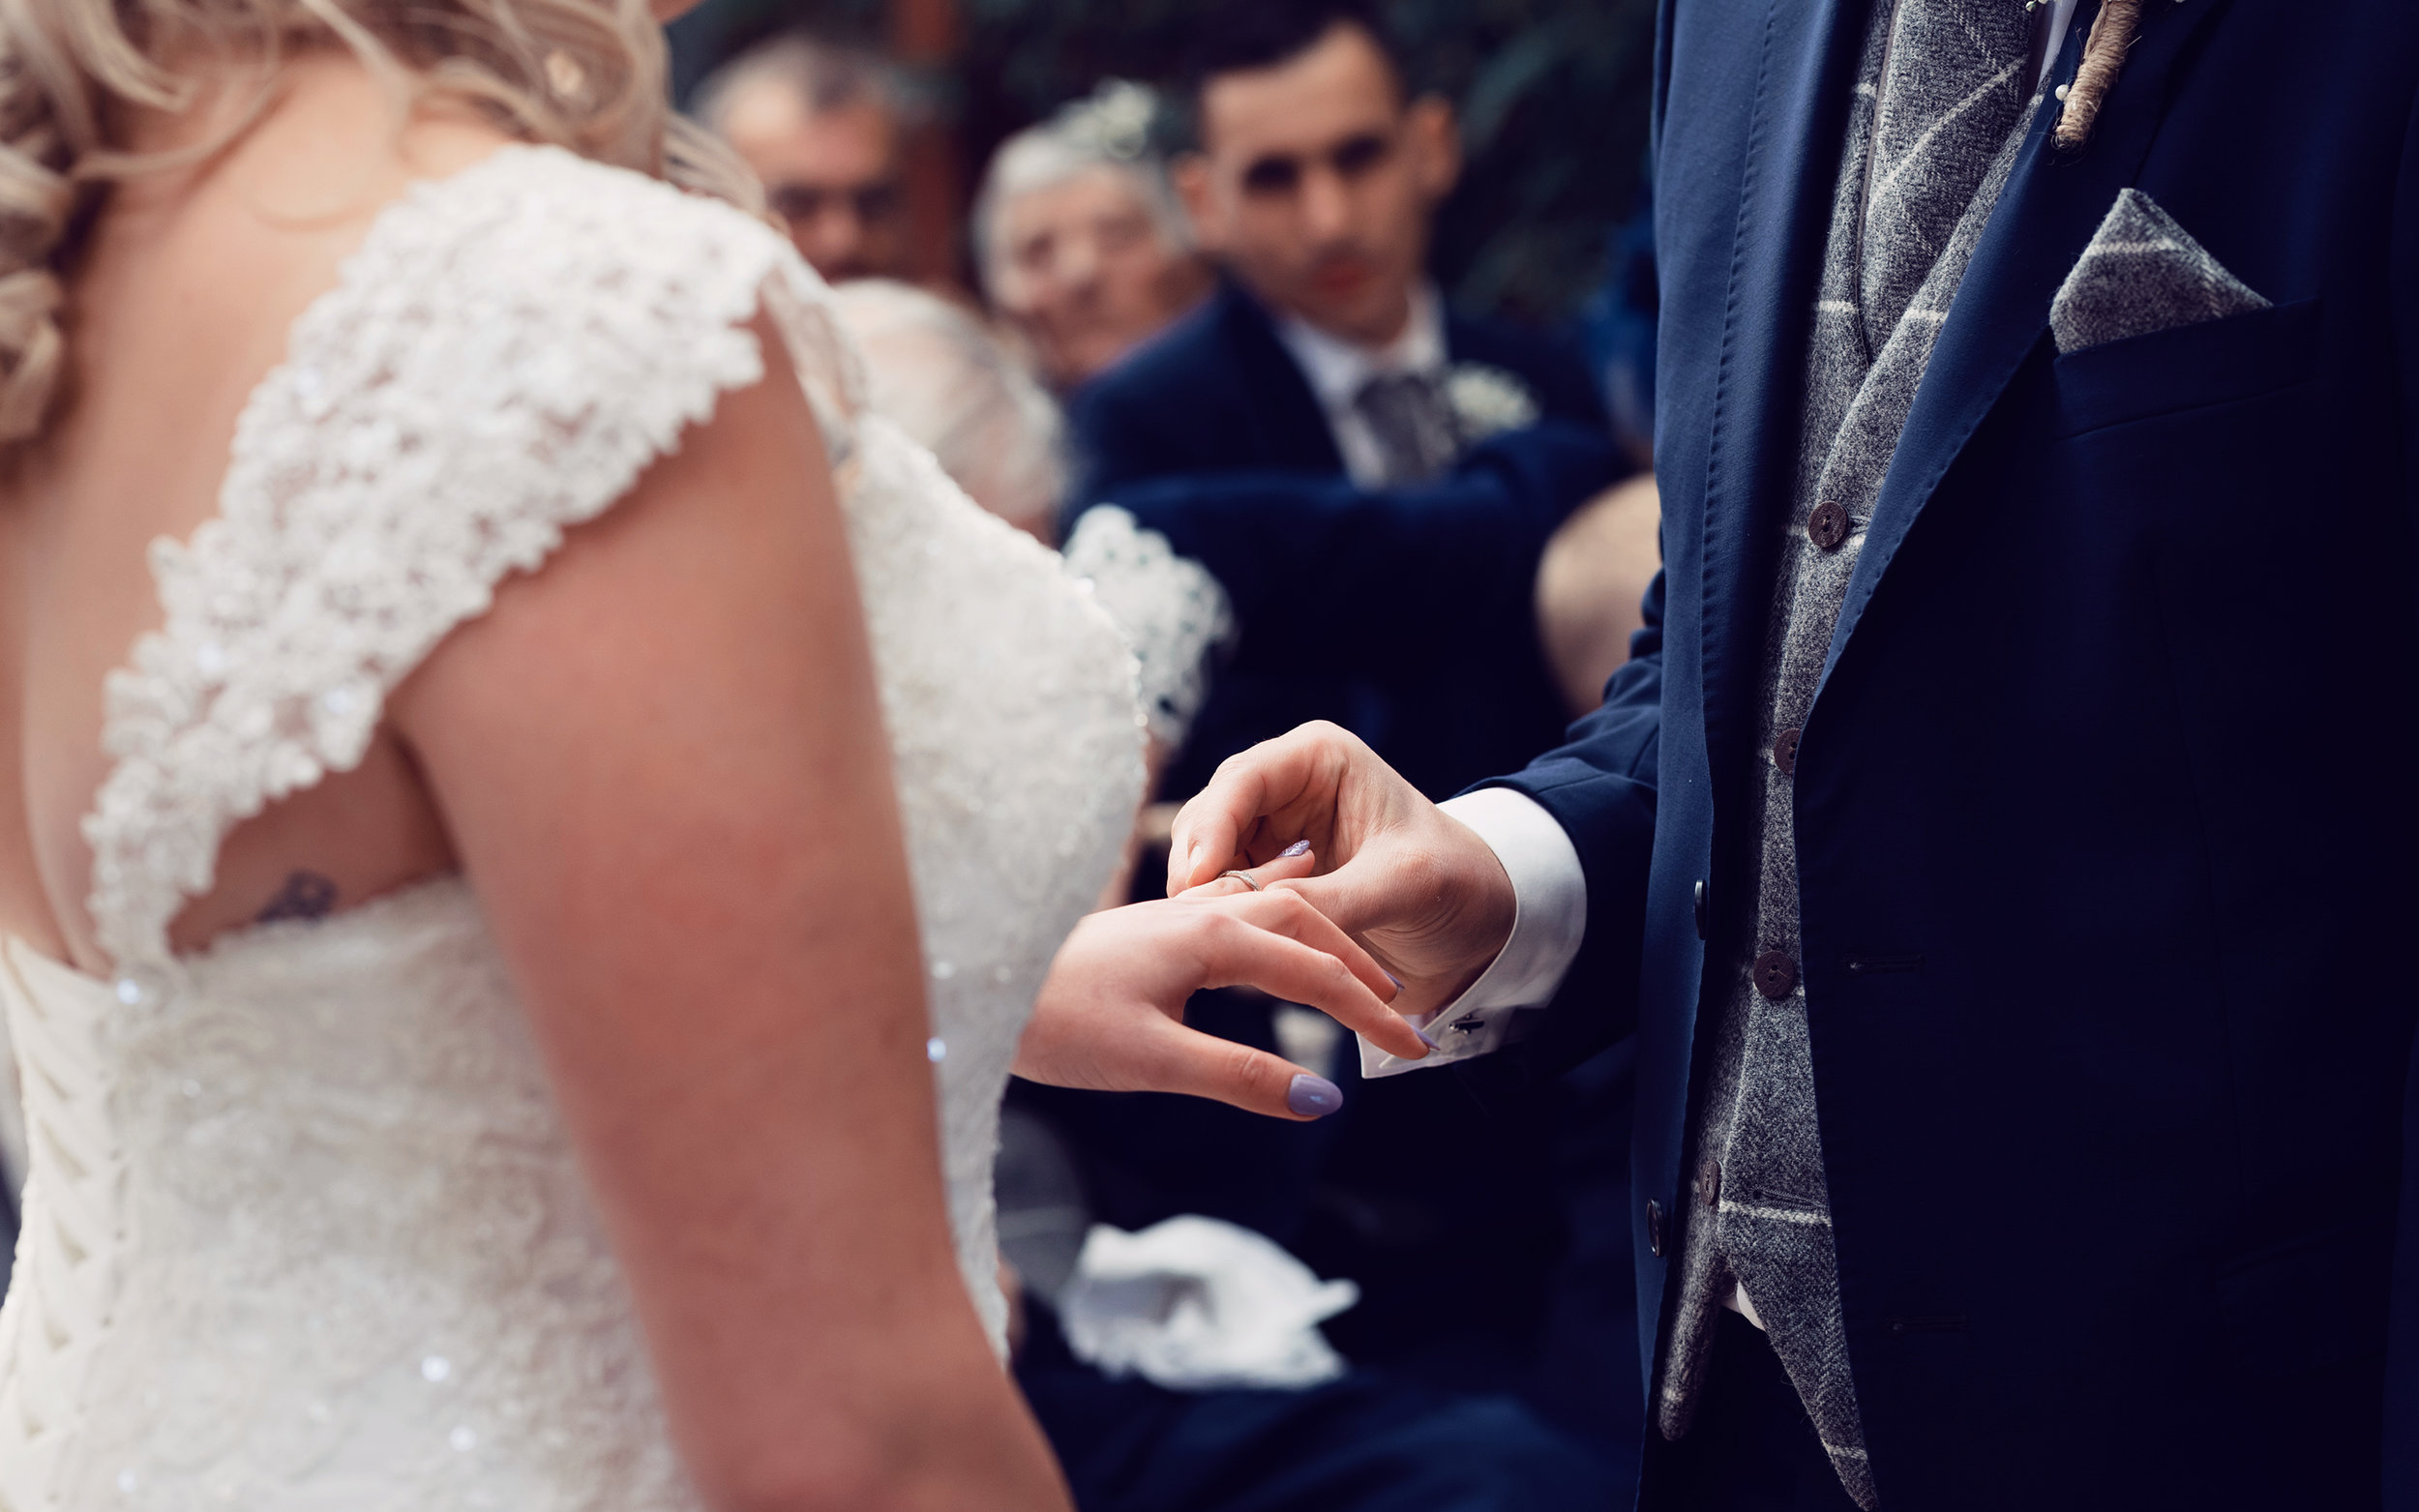 The happy couple exchanging wedding rings